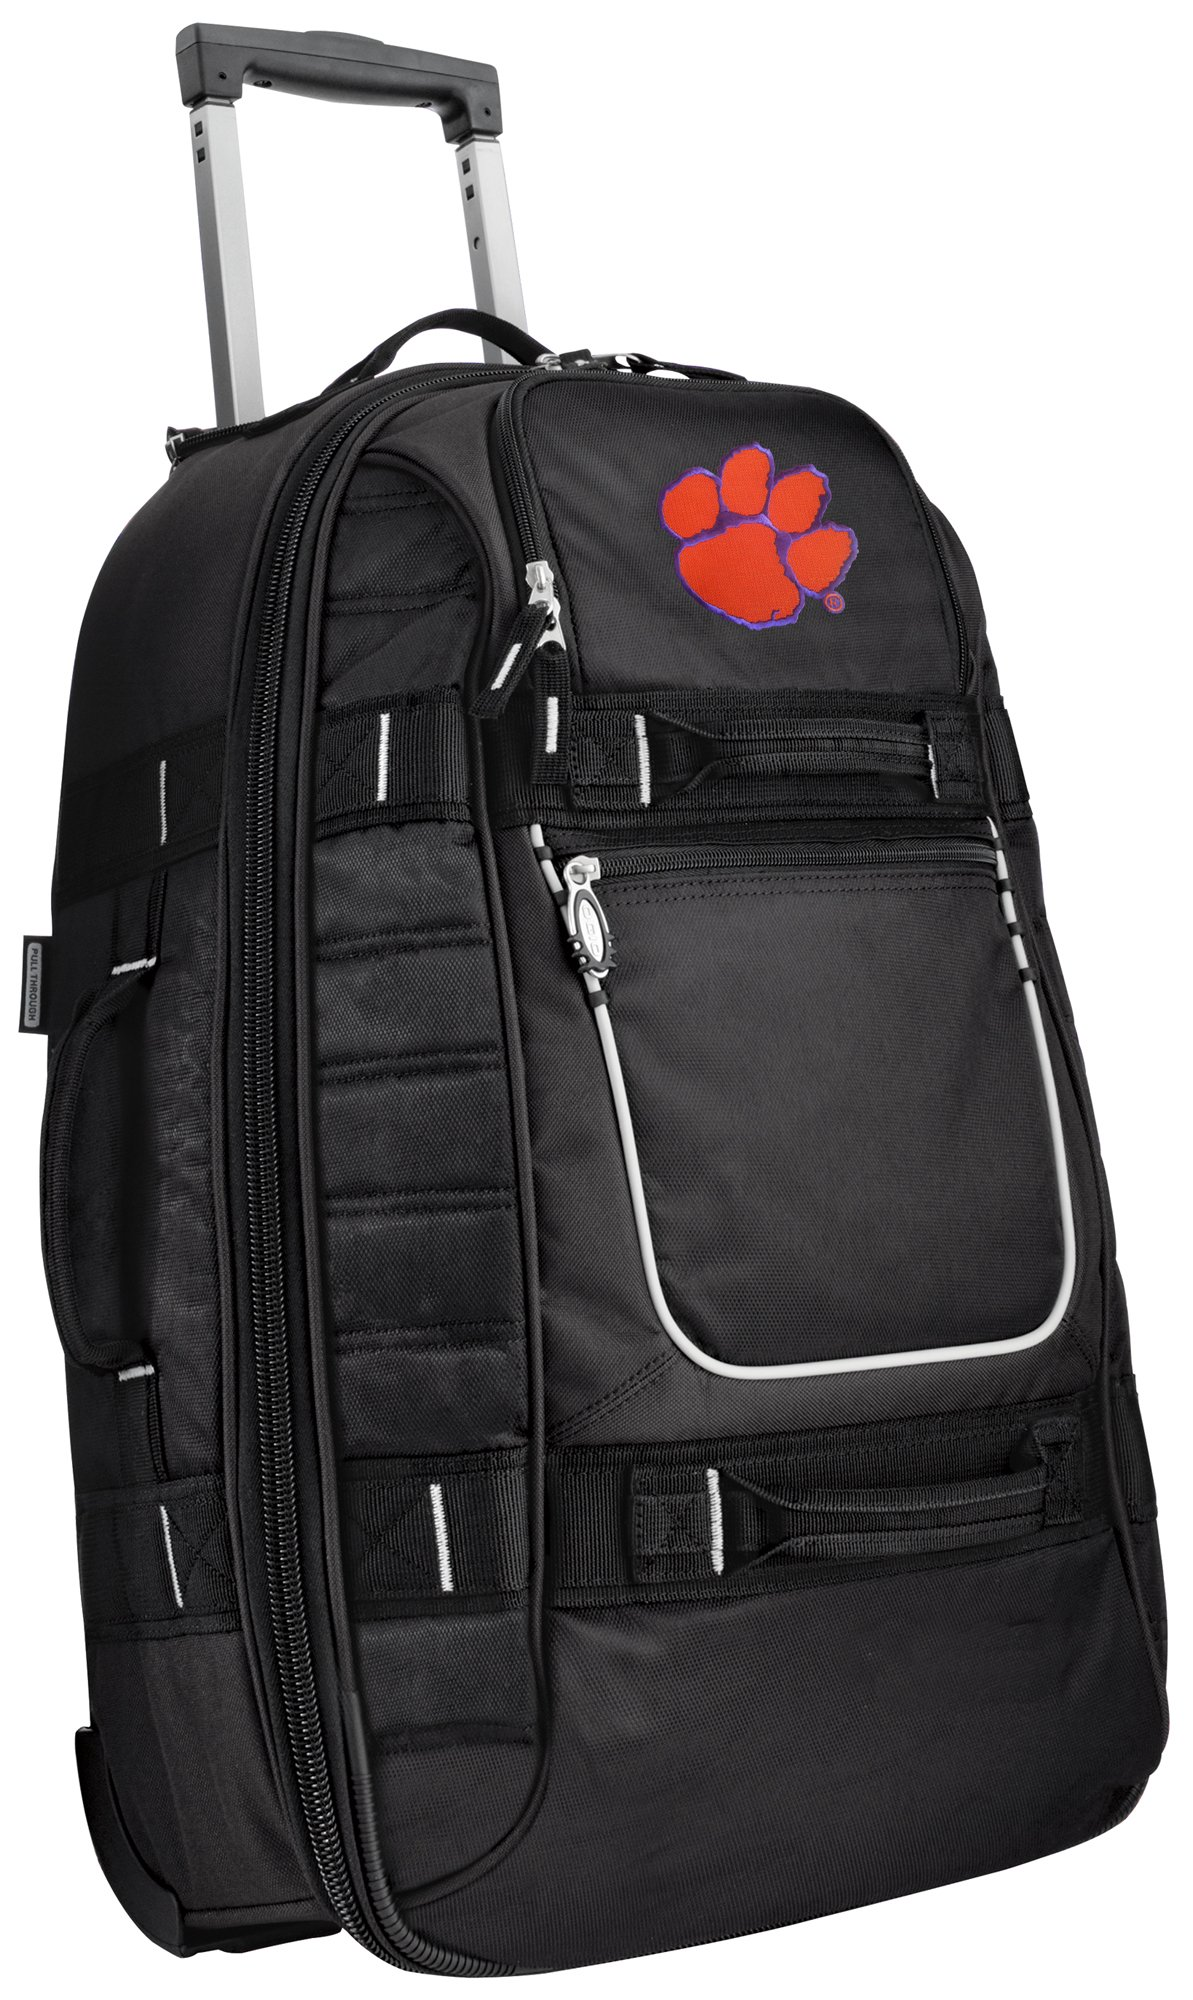 Small Clemson University Carry-On Bag Wheeled Suitcase Luggage Bags